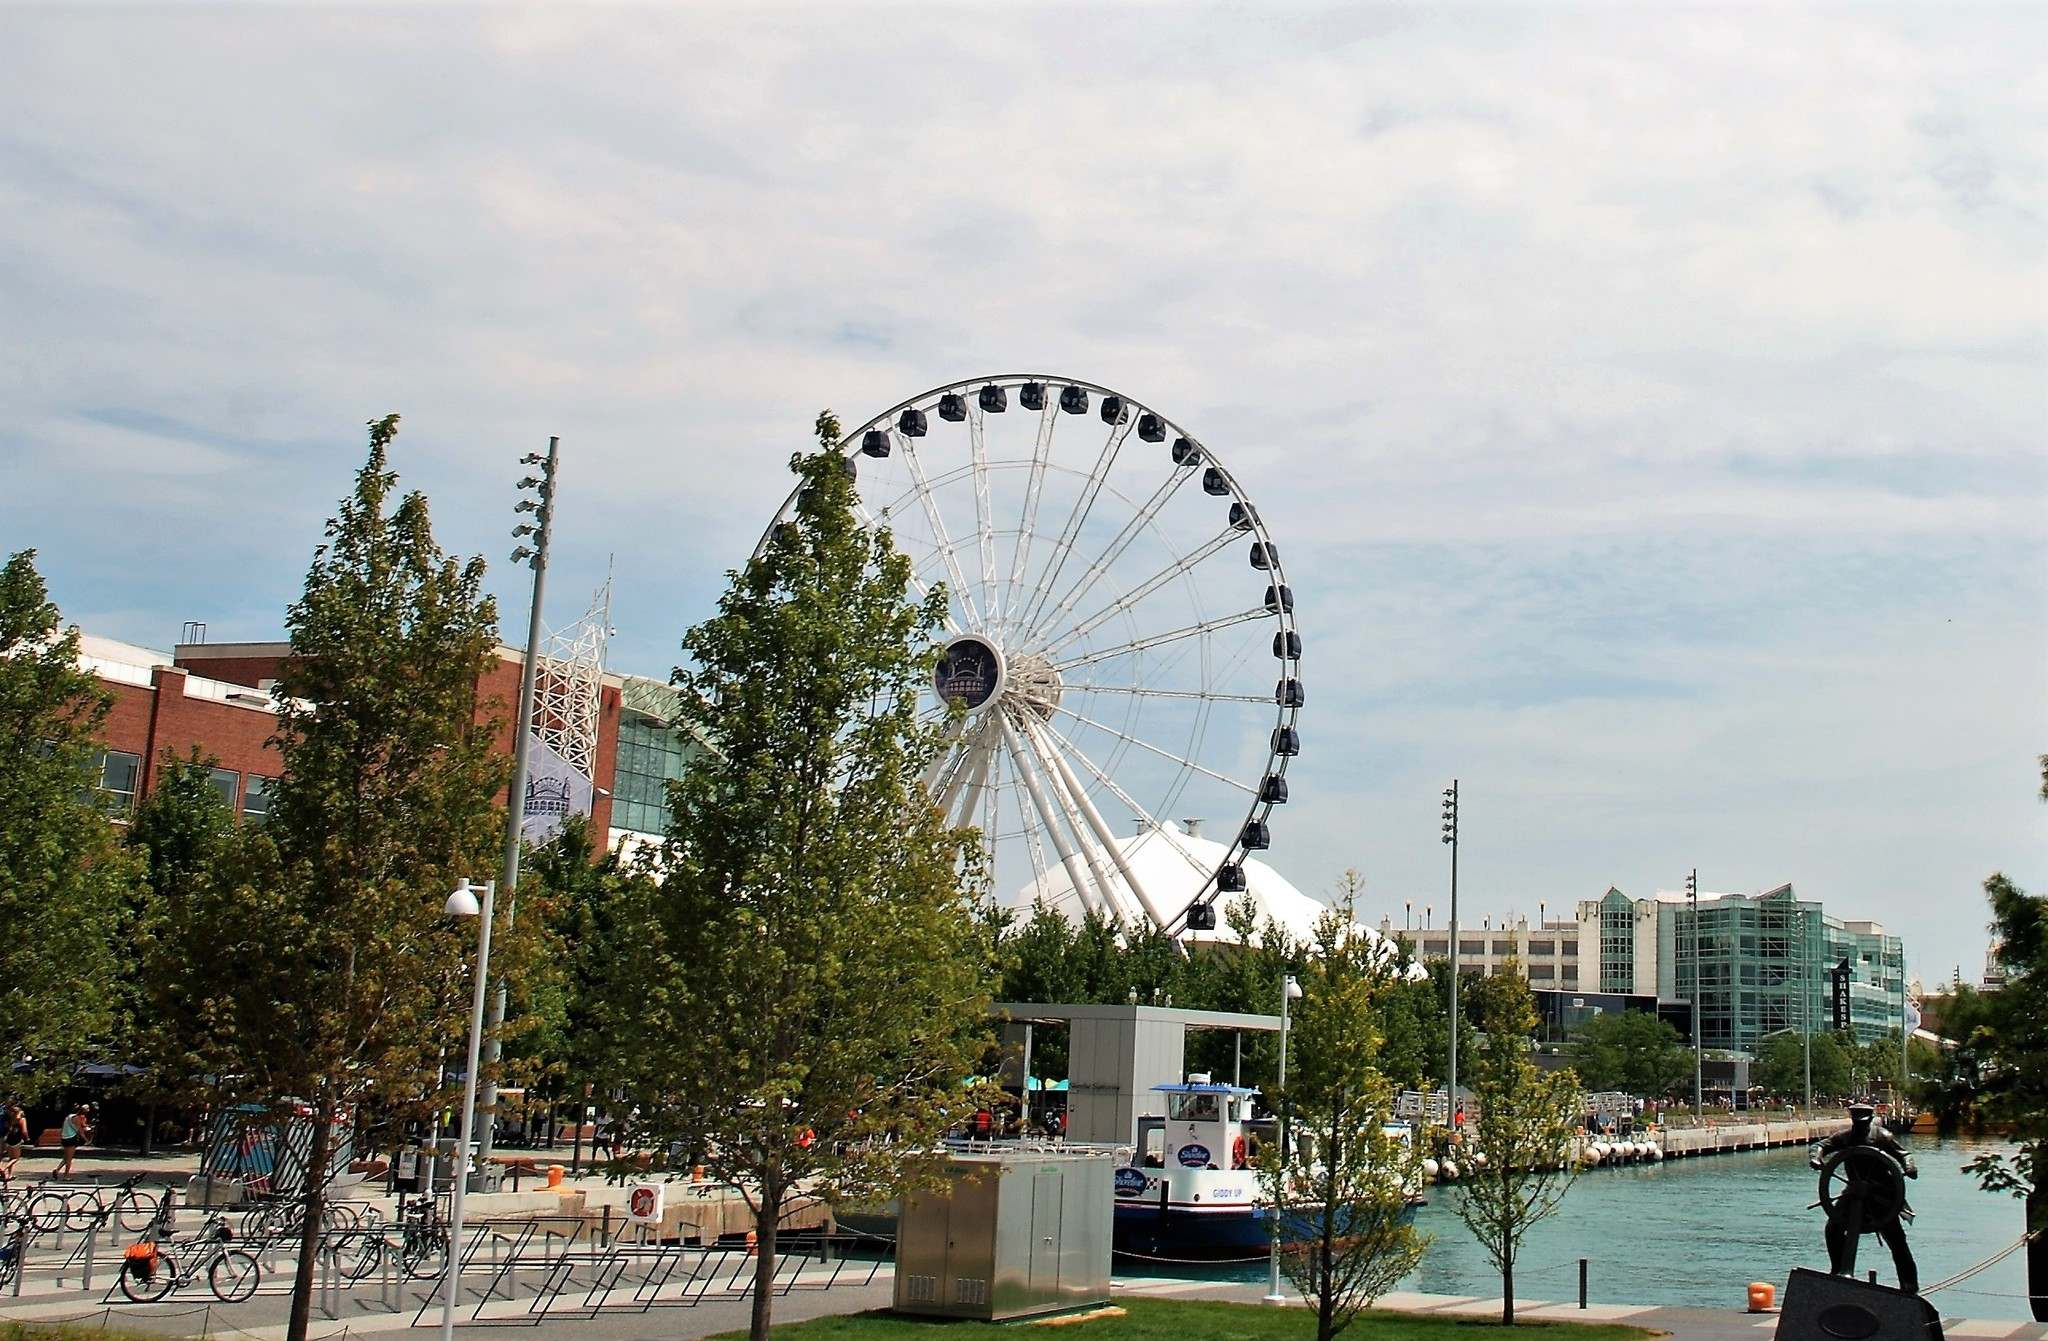 George Ferris invented the first Ferris Wheel (far left) for the Chicago World&rsquo;s Fair of 1893. Following excellent pre-training, Free Press travel columnist Ron Pradinuk (left) really enjoyed the Segway adventure.</p></p>